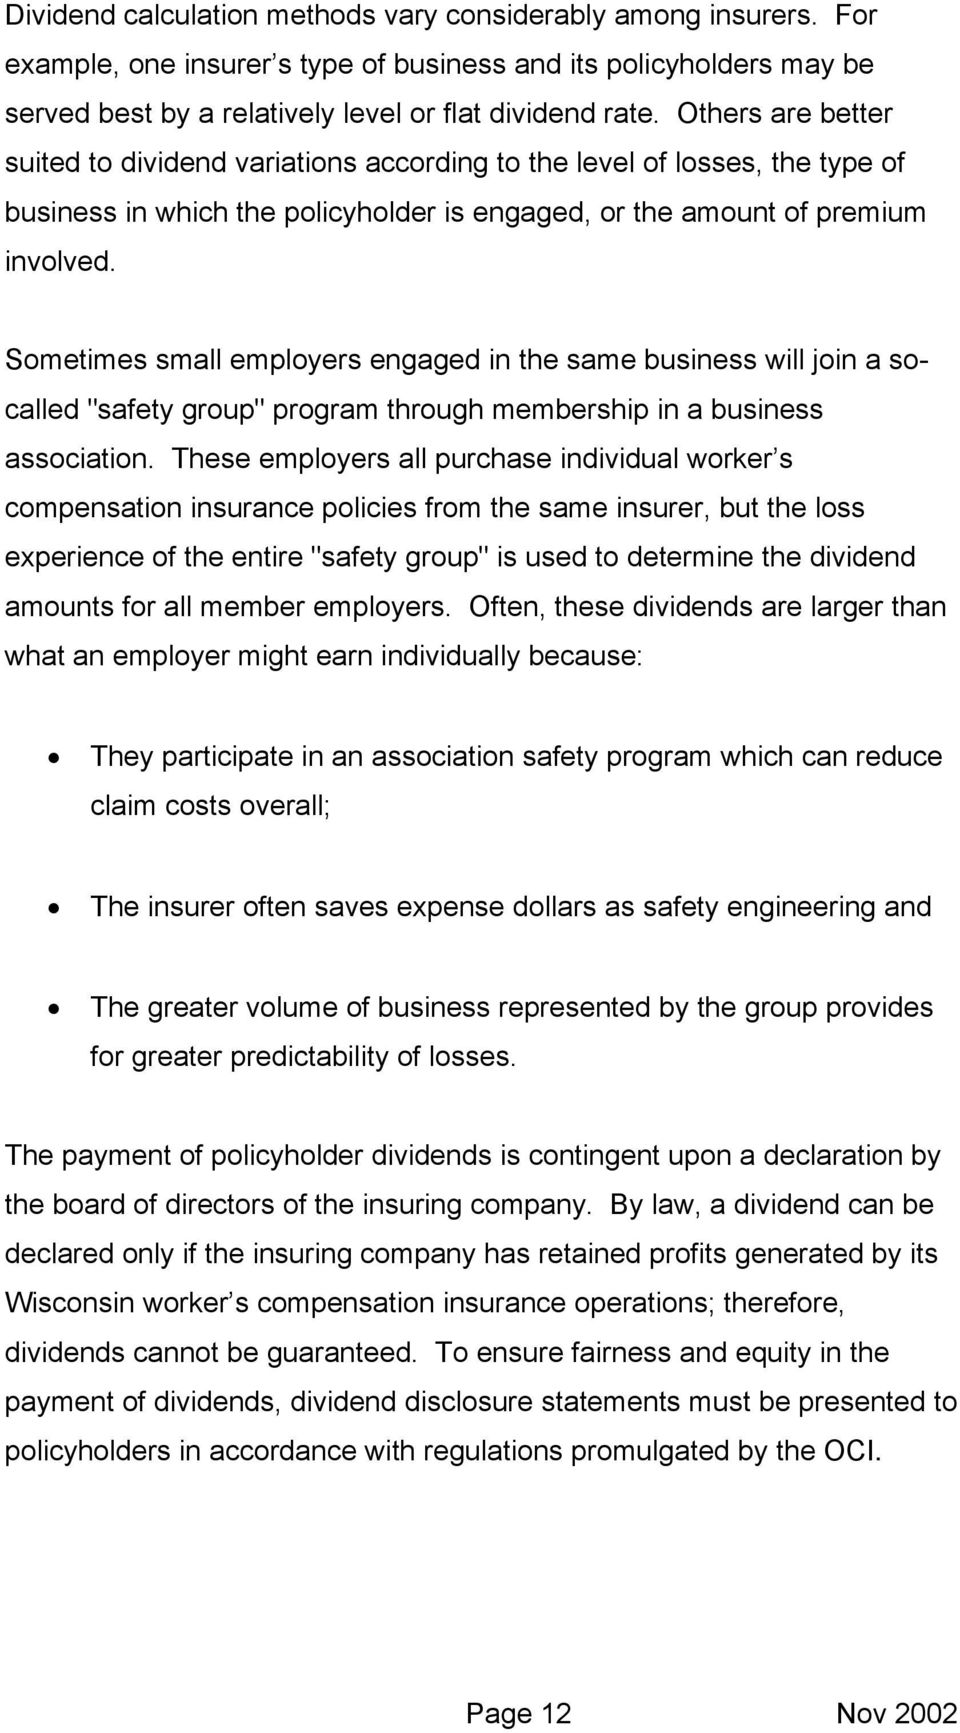 "Sometimes small employers engaged in the same business will join a socalled ""safety group"" program through membership in a business association."